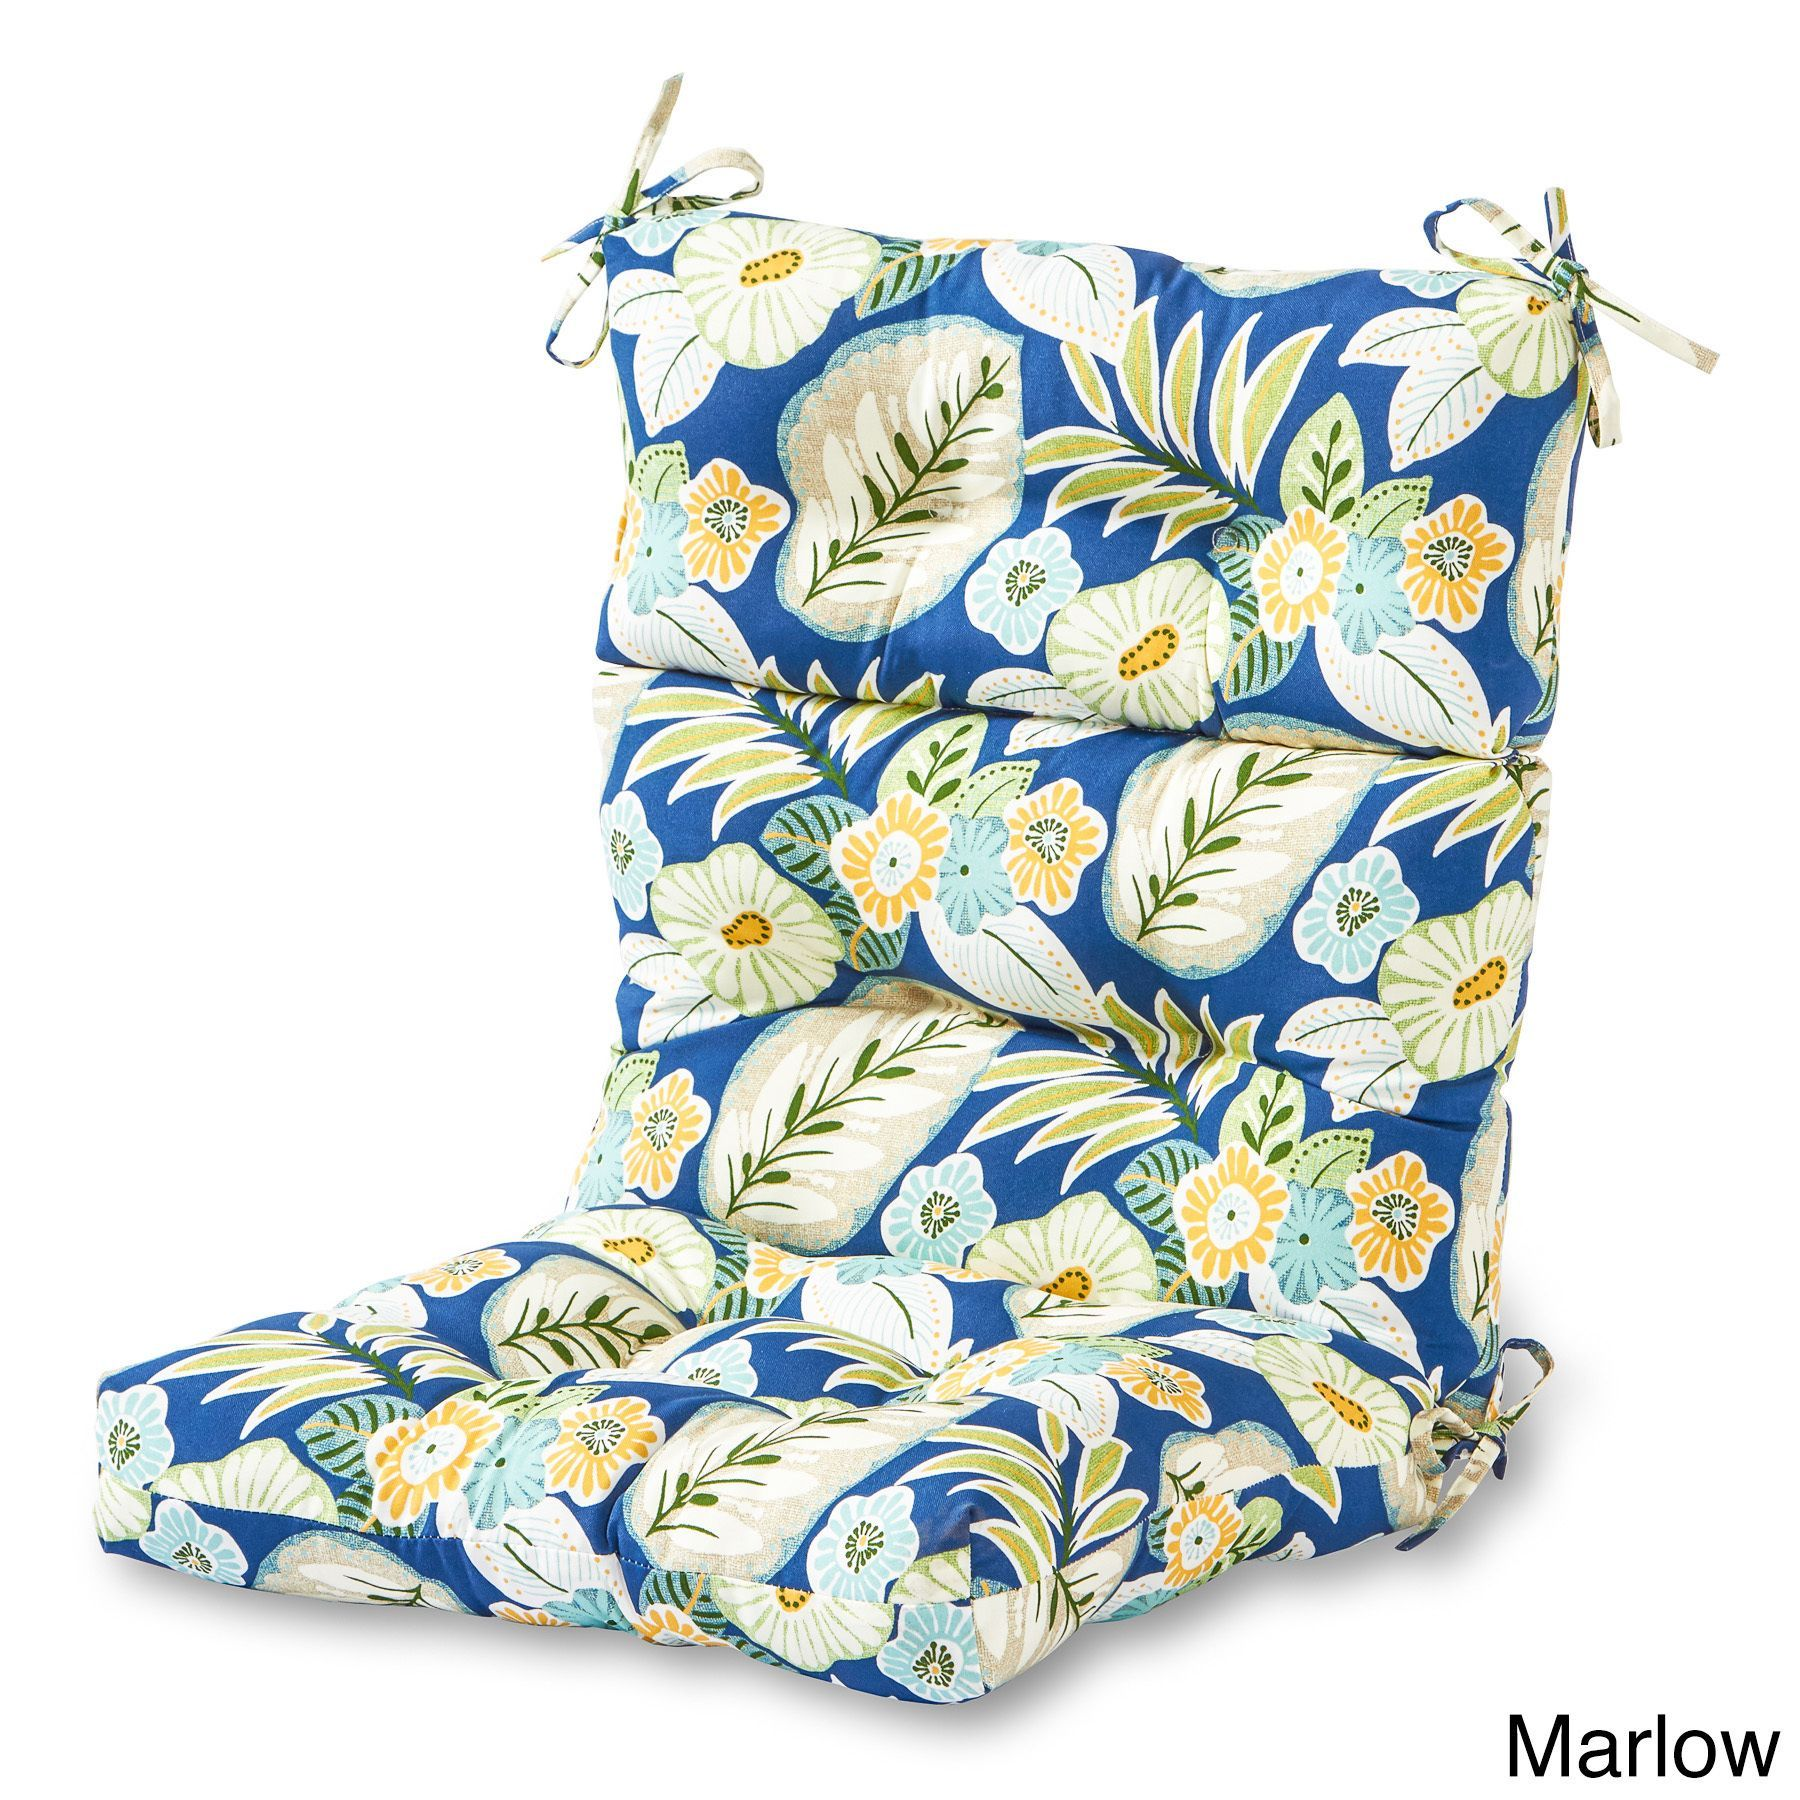 44x22 Inch 3 Section Outdoor High Back Chair Cushion Marlow Blue